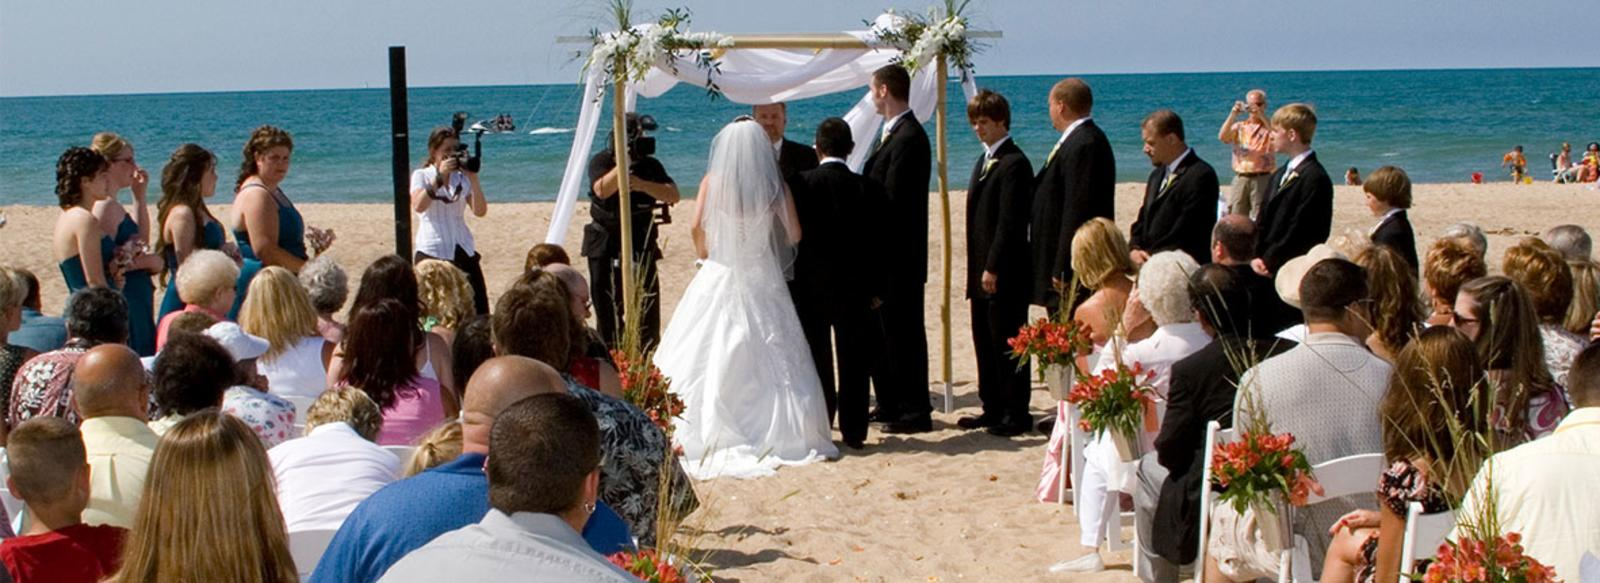 Beach Weddings Marquette Park Gary